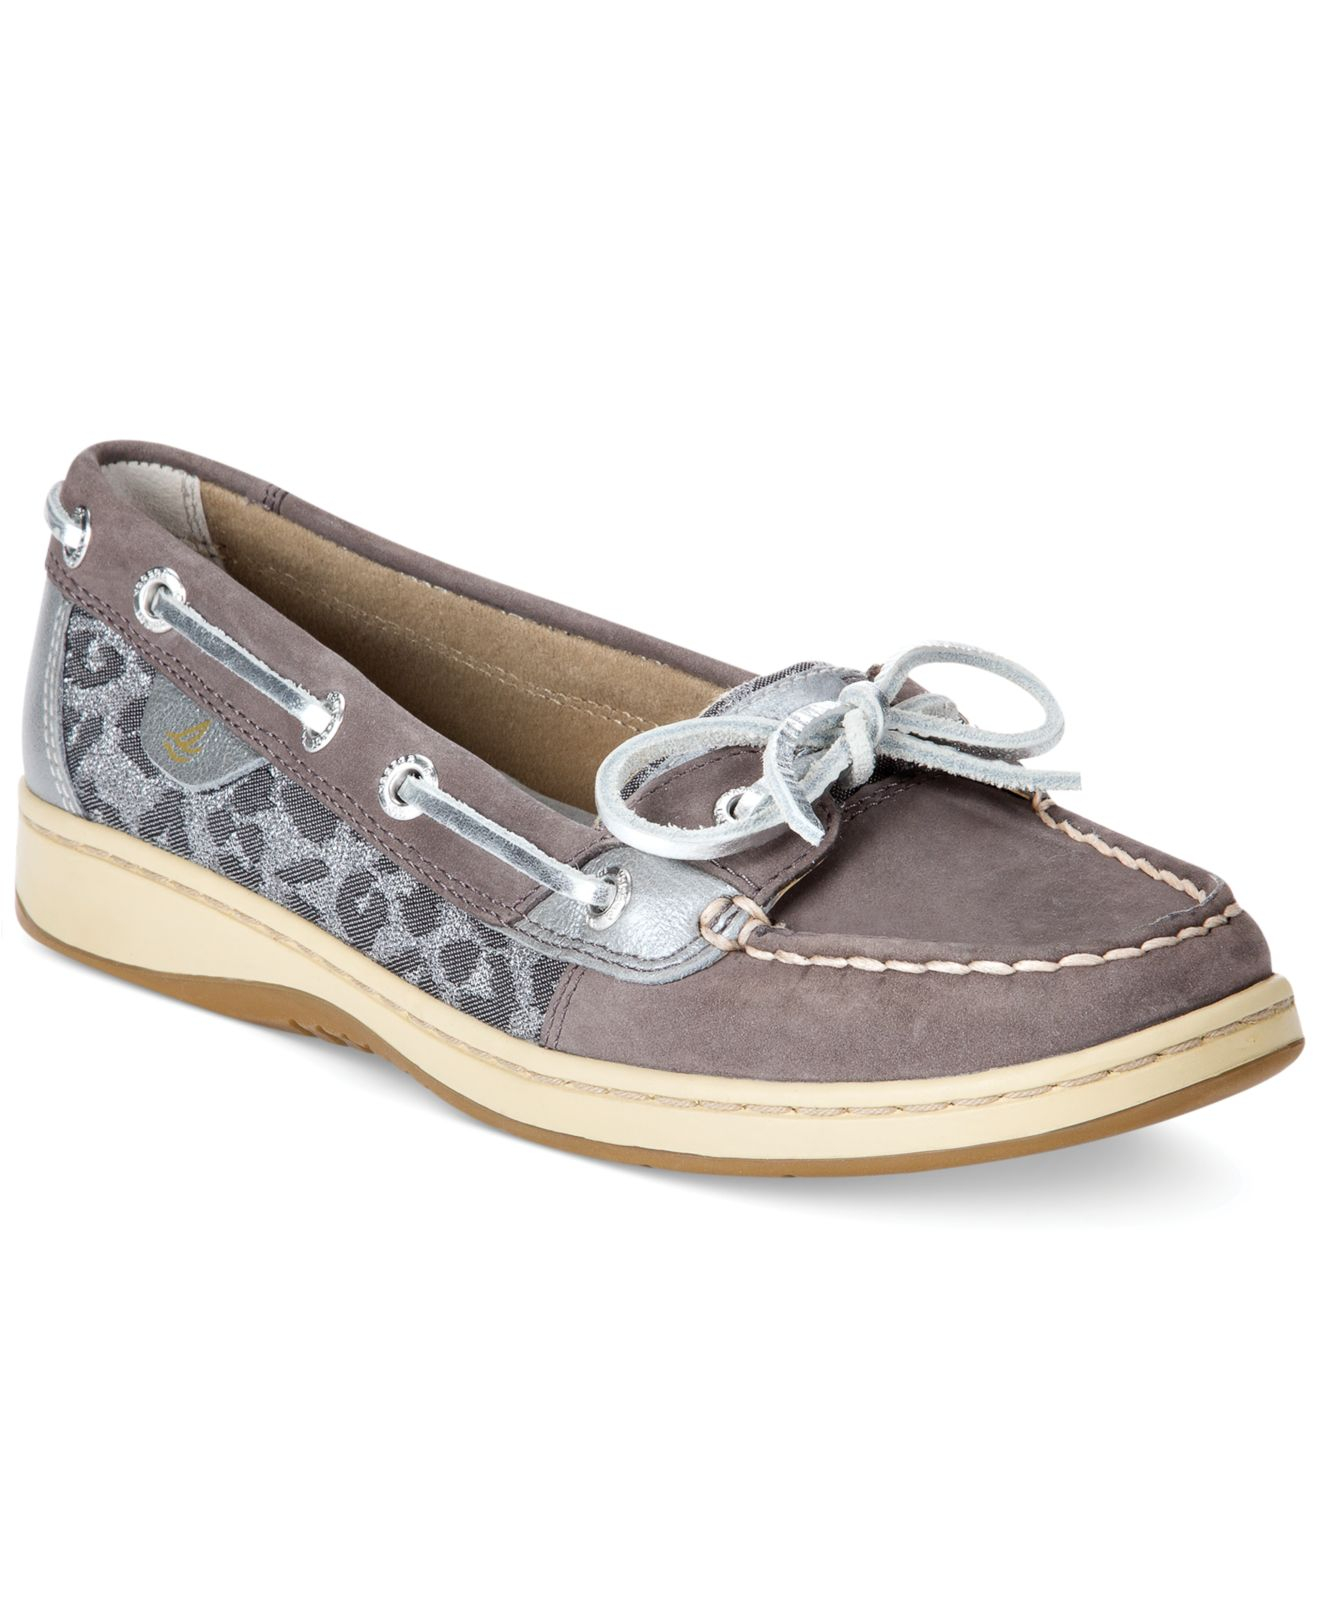 Lyst Sperry Top Sider Women S Angelfish Boat Shoes in Gray